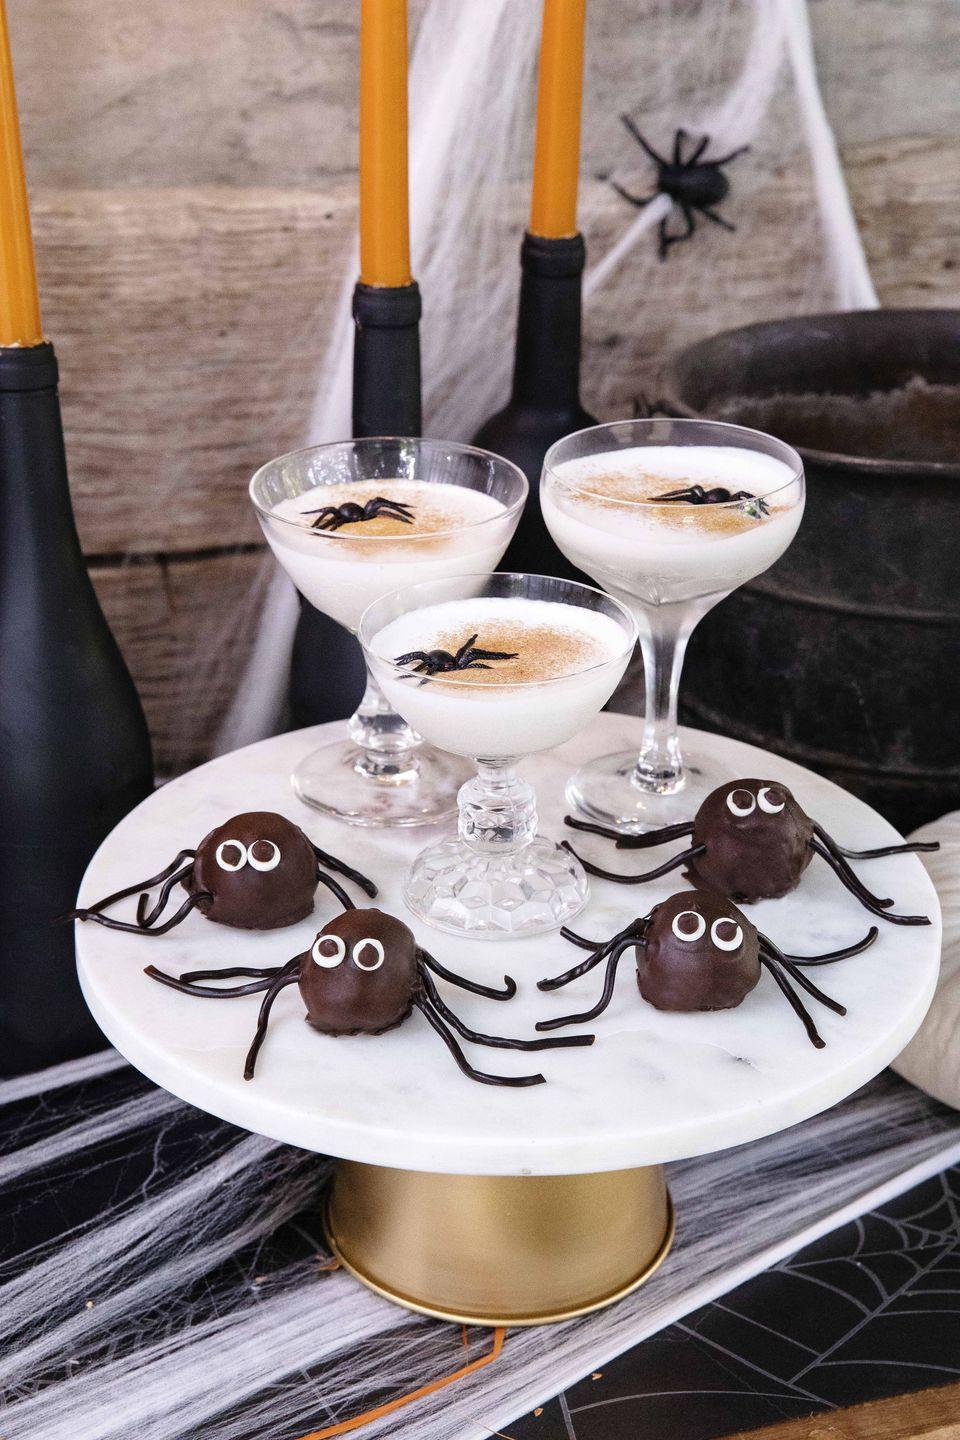 """<p>Garnished with pumpkin spice and a creepy spider, this take on a White Russian is just the thing for a grown-up holiday bash.</p><p><strong><a href=""""https://www.countryliving.com/food-drinks/a33943308/liquid-web-cocktails/"""" rel=""""nofollow noopener"""" target=""""_blank"""" data-ylk=""""slk:Get the recipe"""" class=""""link rapid-noclick-resp"""">Get the recipe</a>.</strong></p>"""